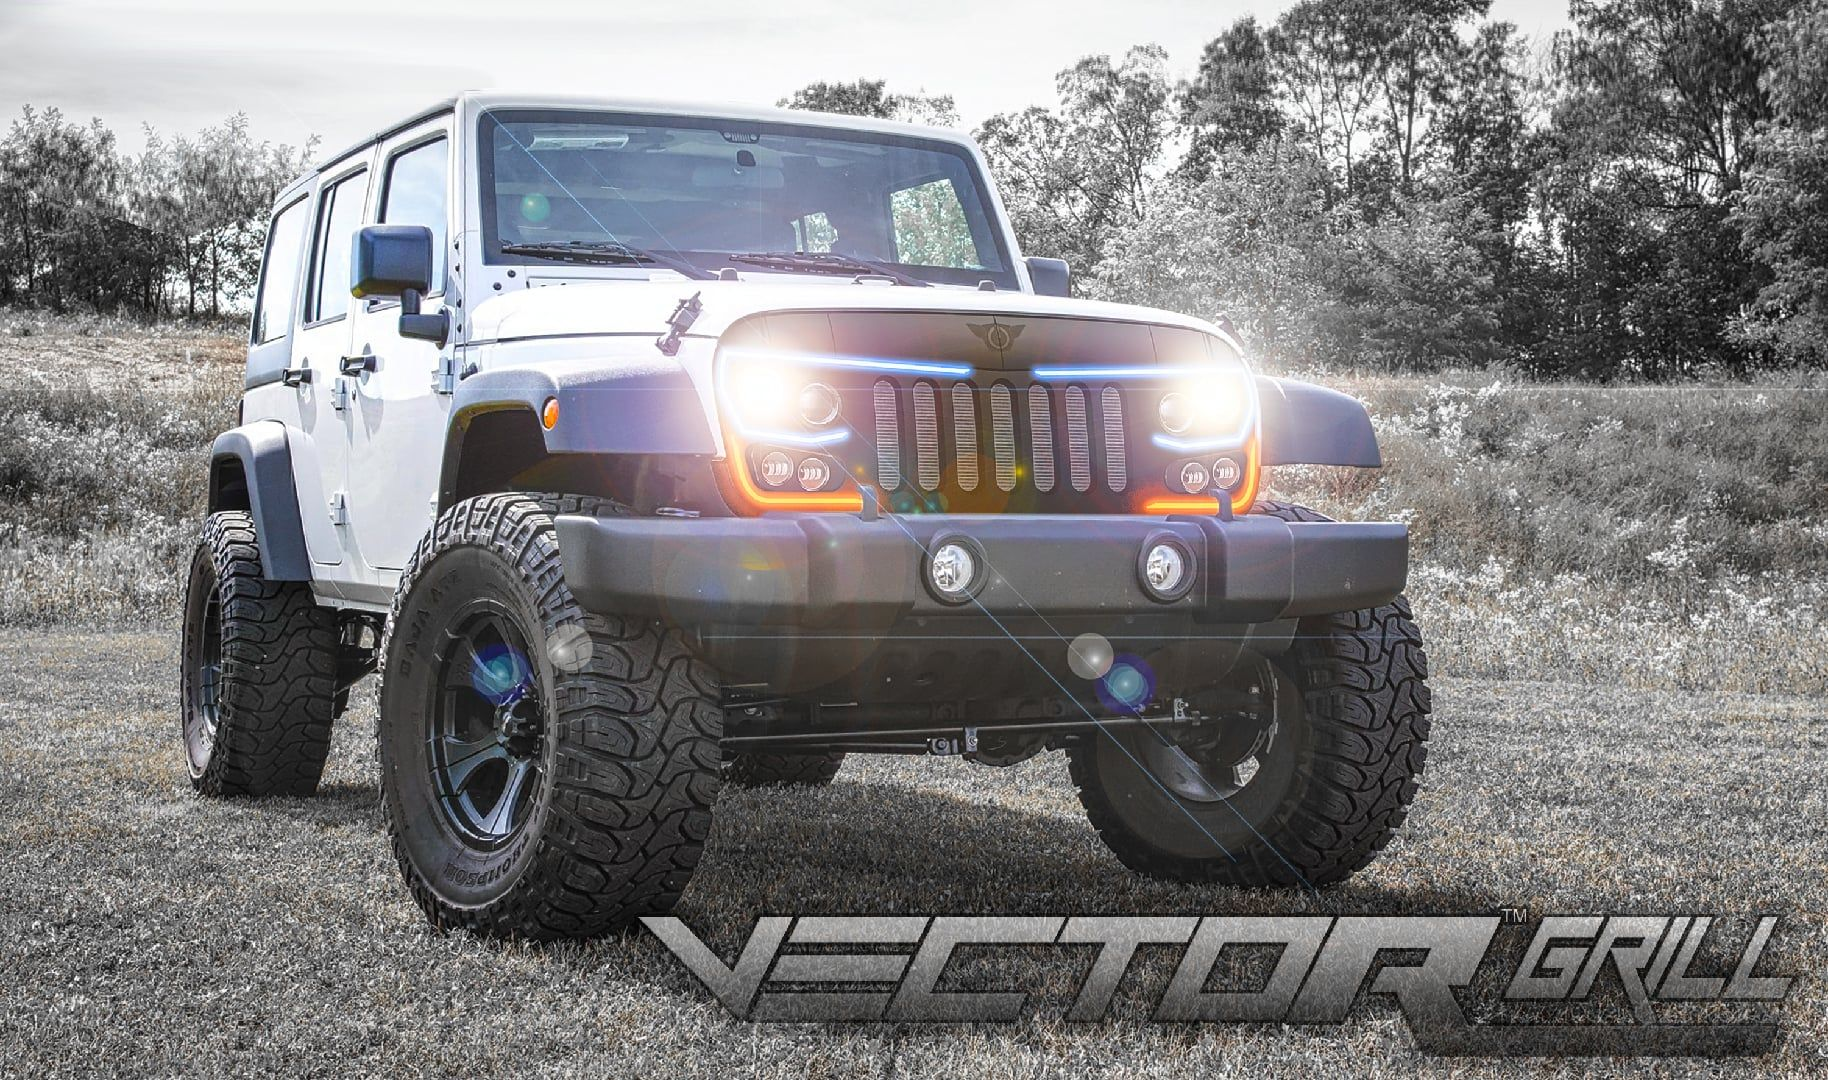 Series Grill For The Jeep Wrangler Jk